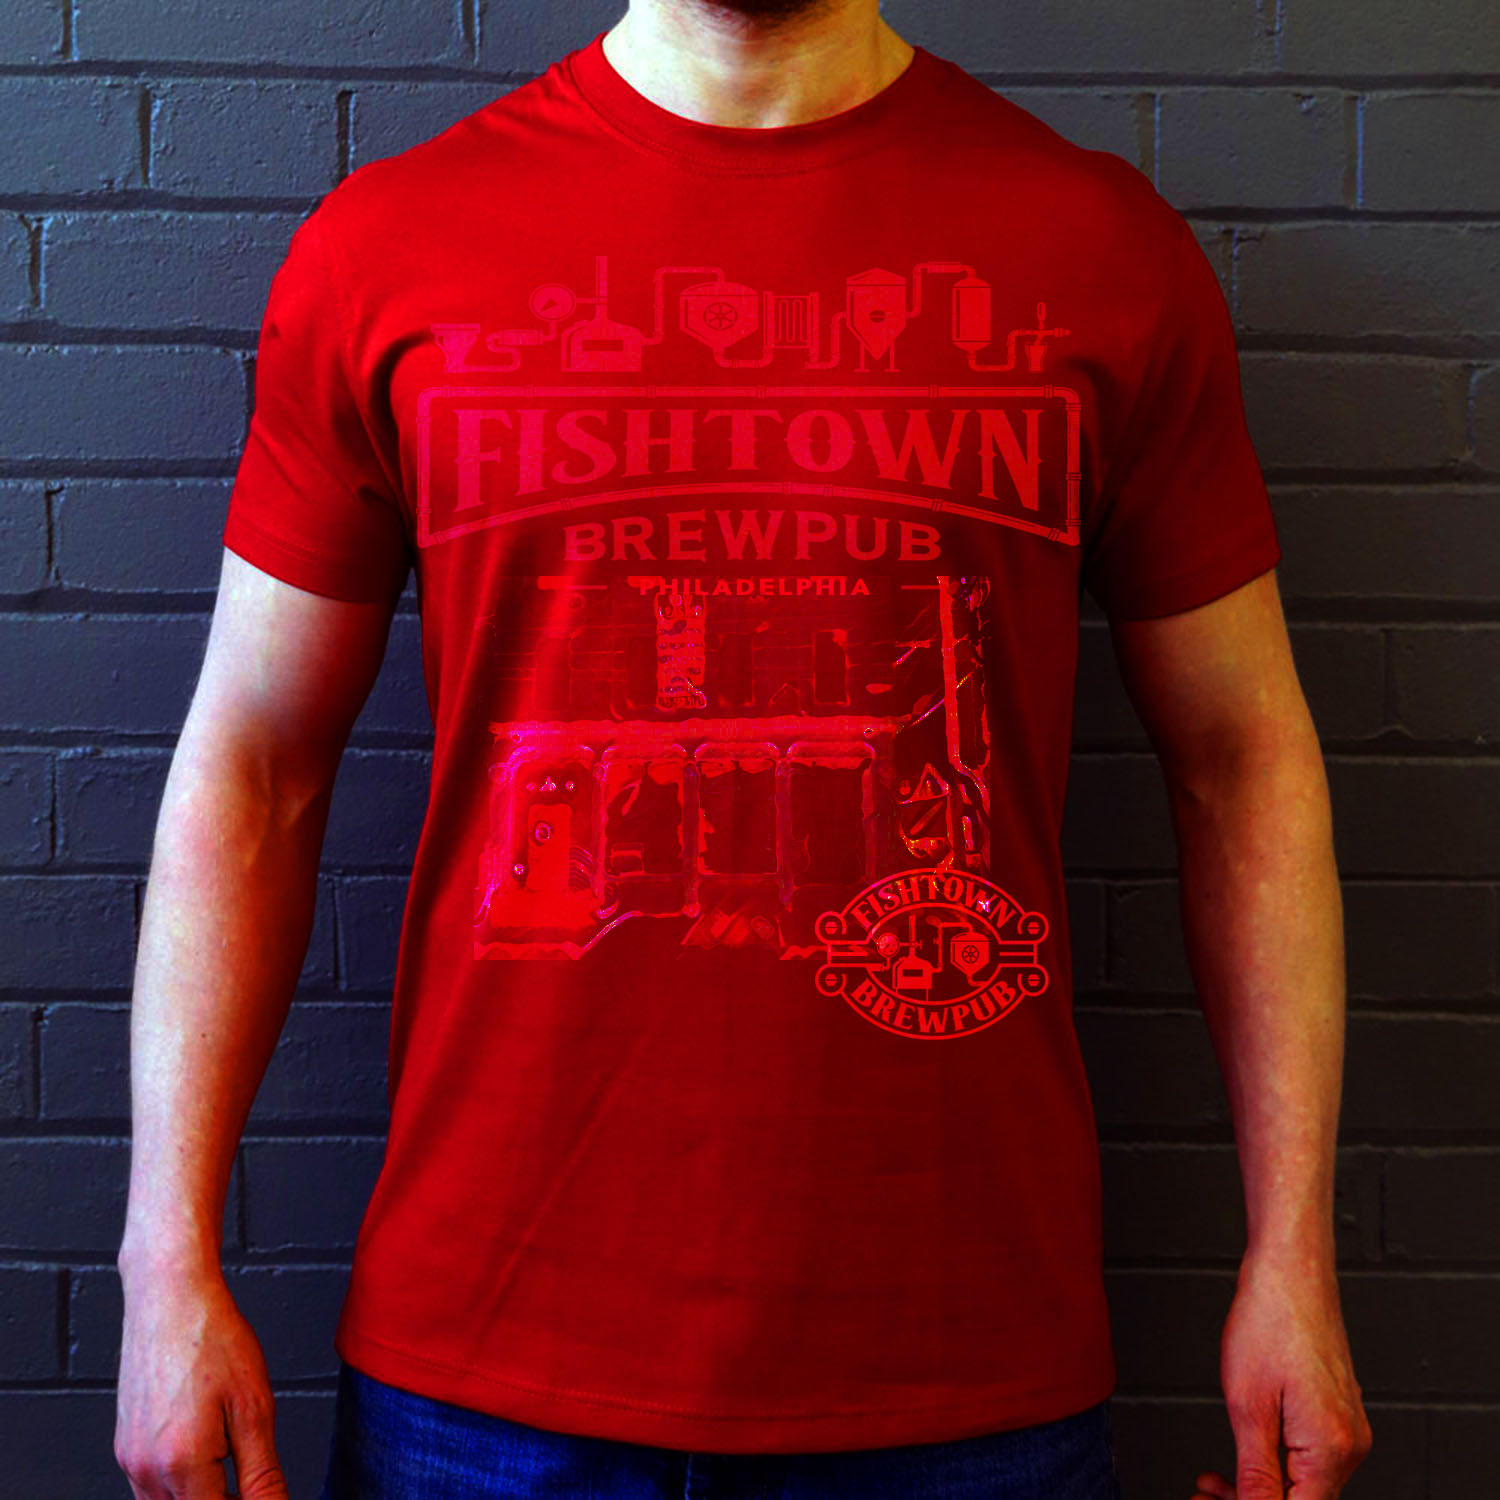 T-shirt Design by Anh Tran Thi Phuong for Fishtown Brewpub | Design #12843123